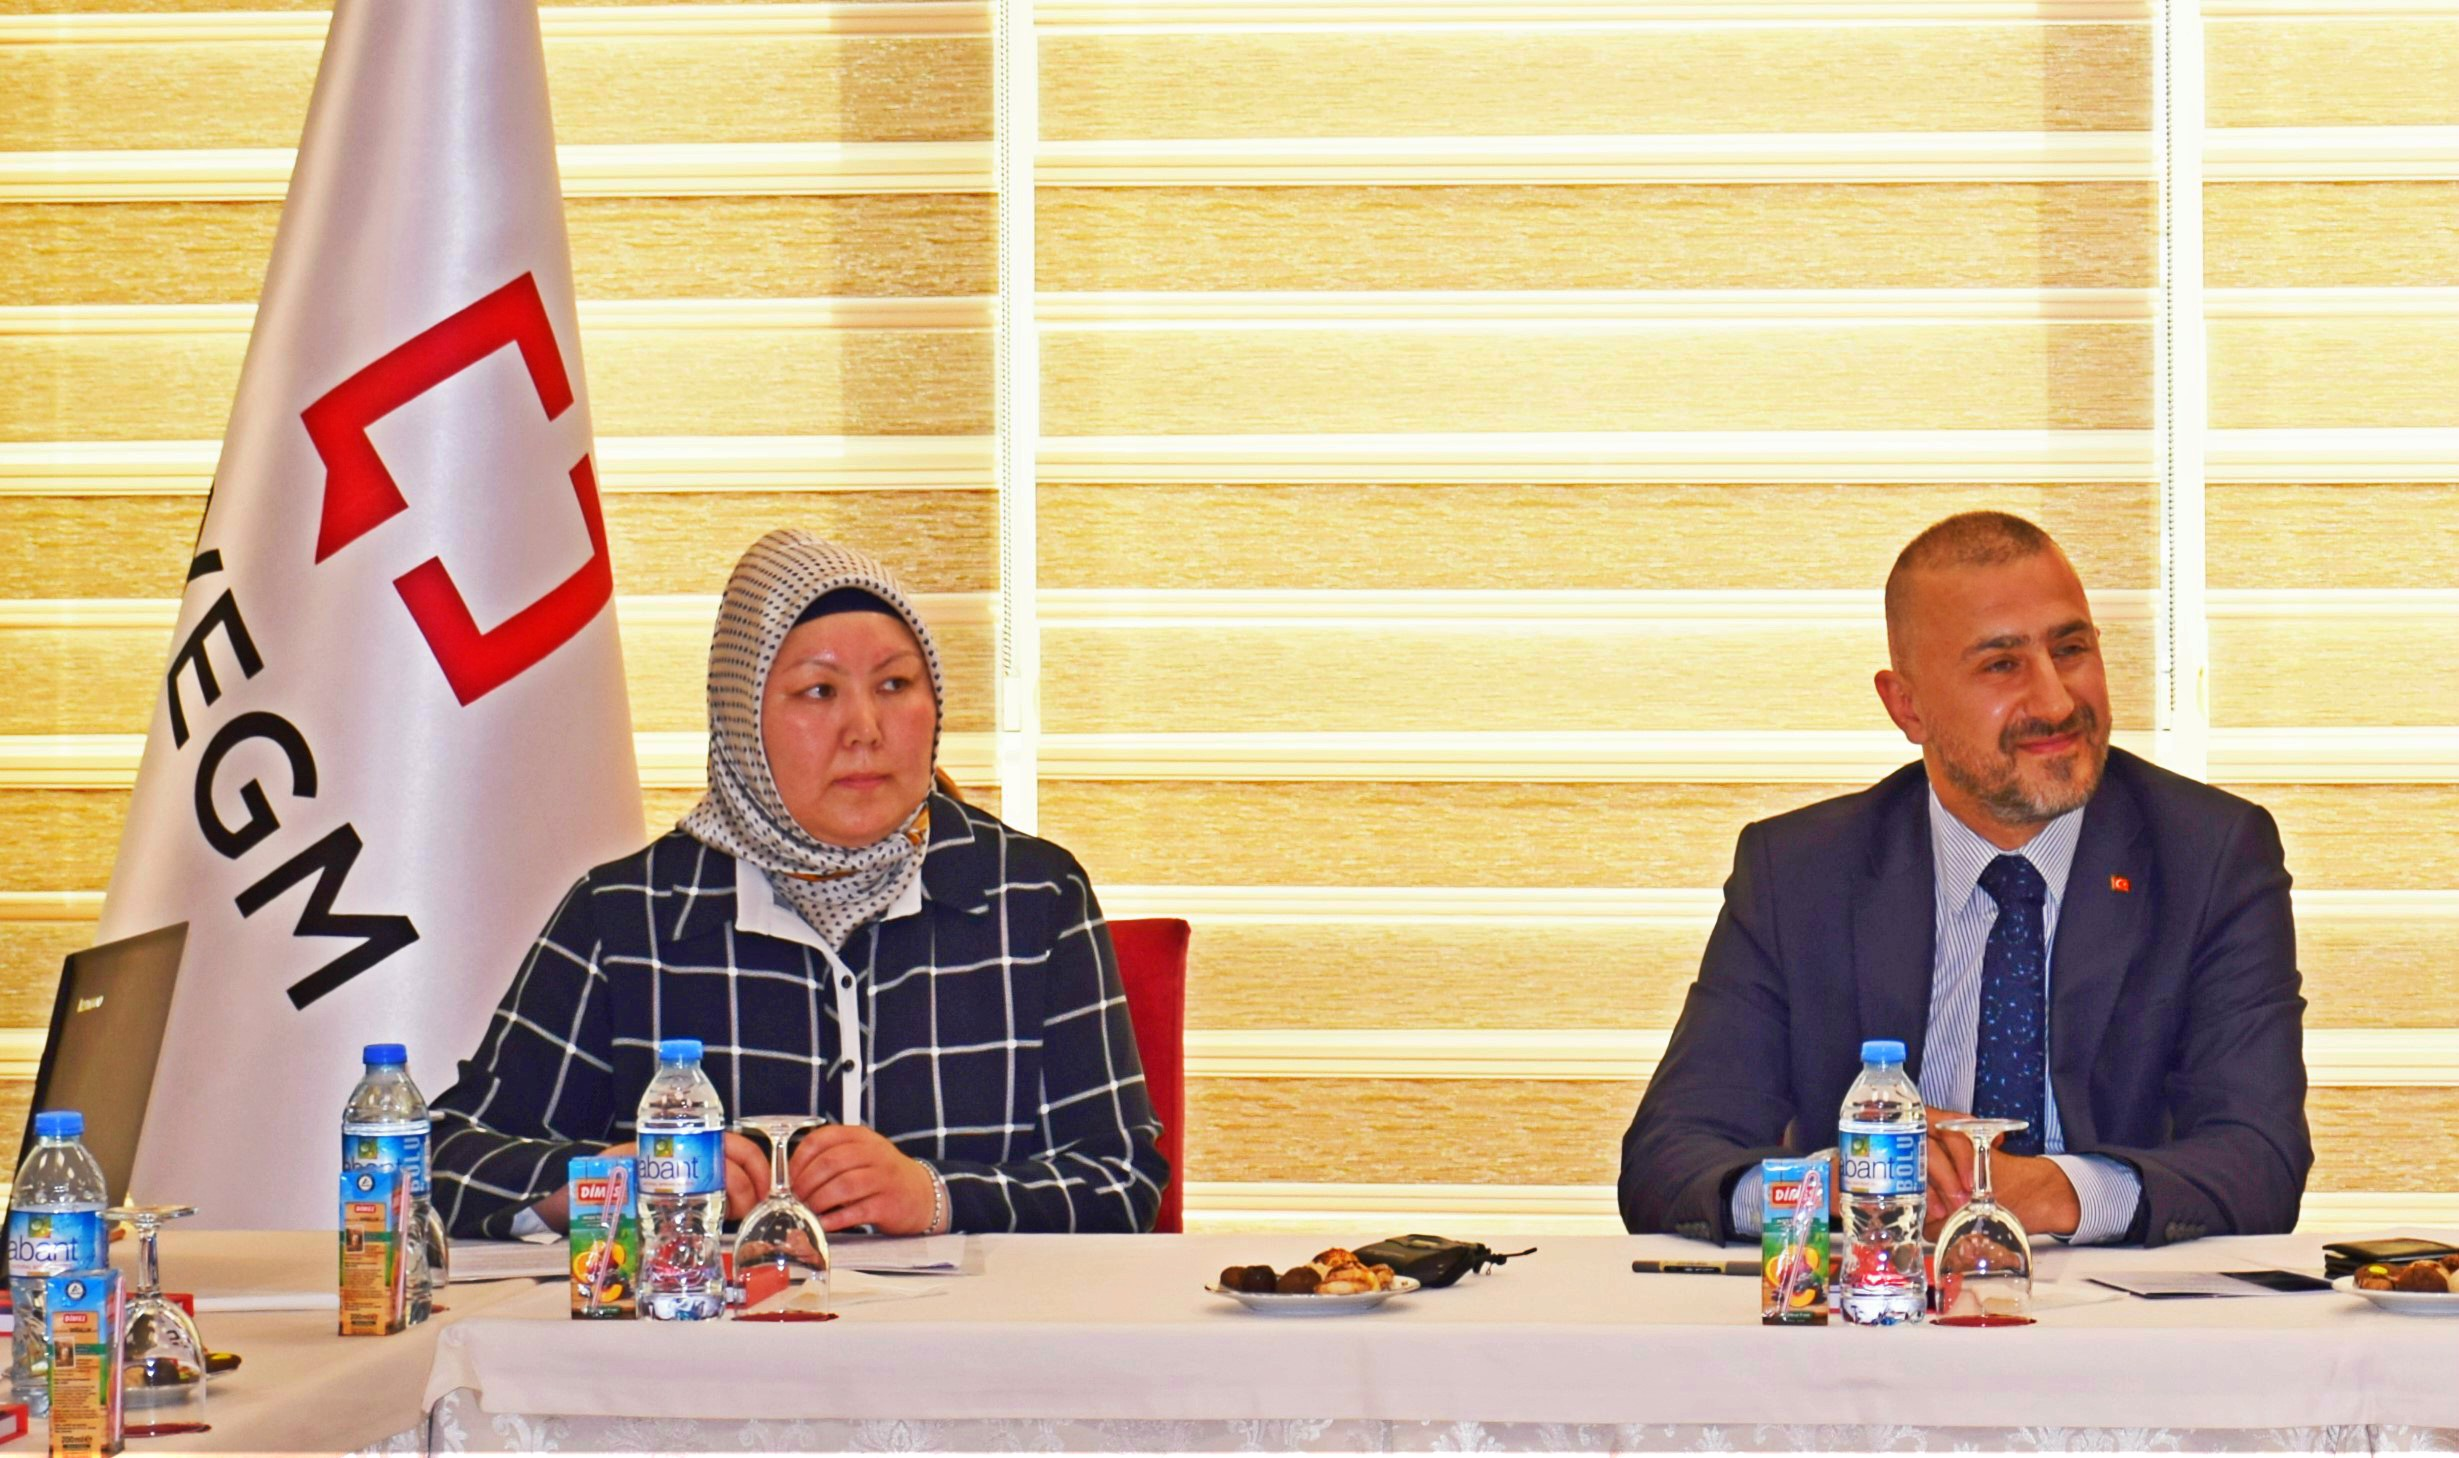 Ismail Mansur Ozdemir, deputy director general of Turkish PM's office for press and information addresses journalists in Ankara on 16 May 2016 (Photo nCa)